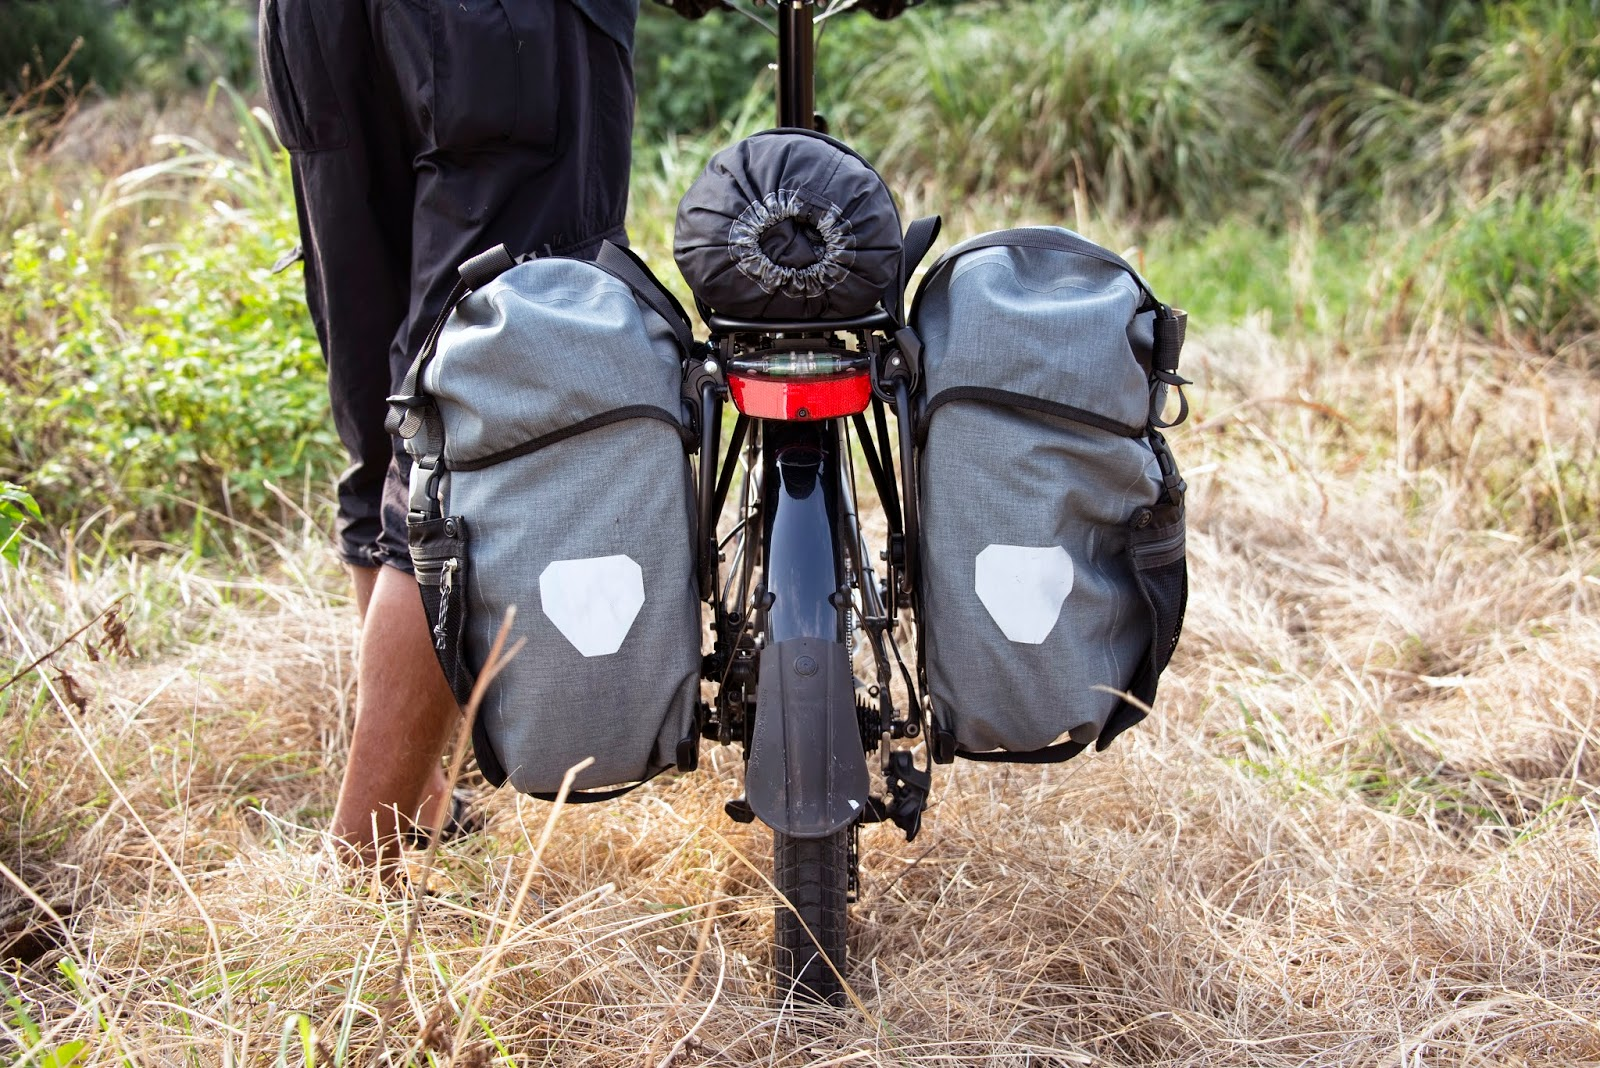 Luggage carrier evolved: Tern Cargo Rack